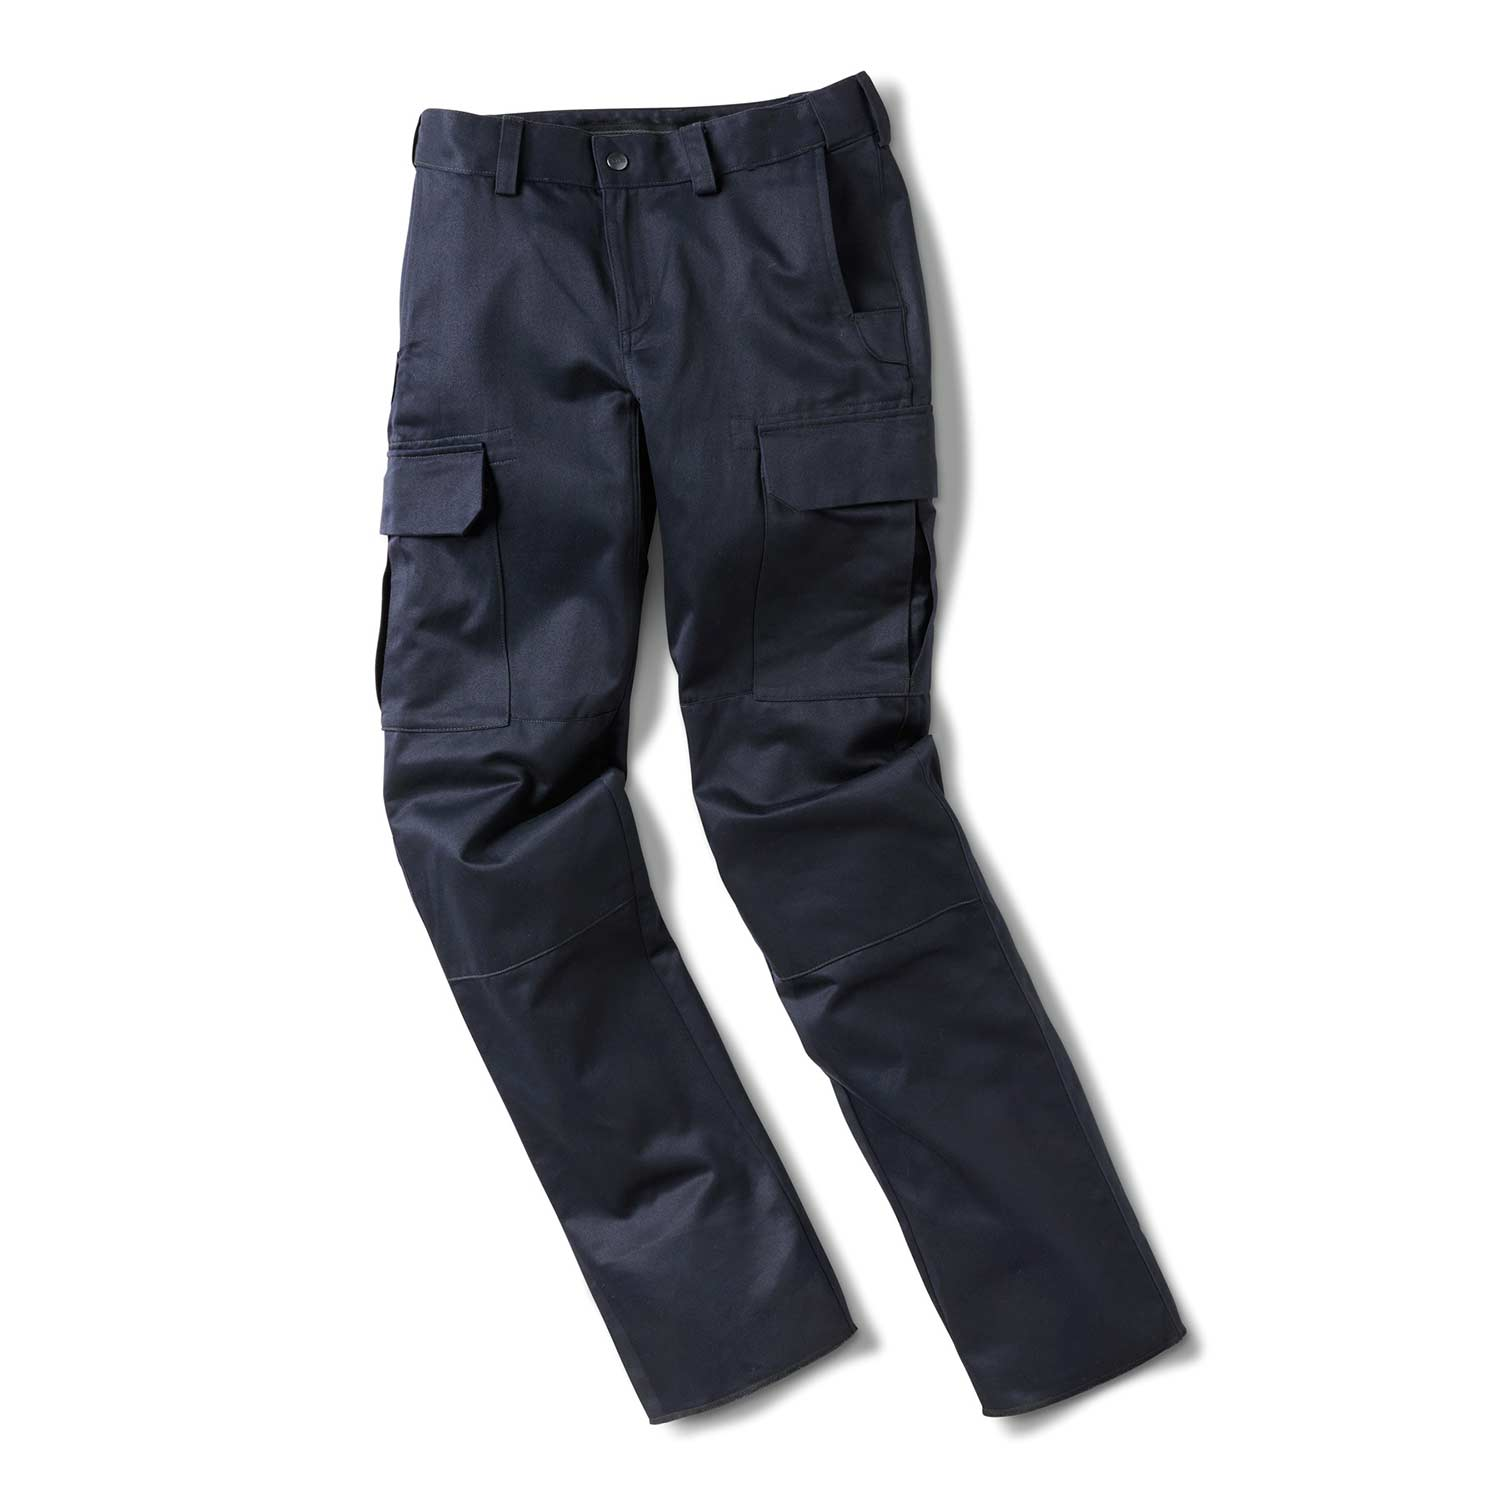 5.11 Tactical Women's Company Cargo Pant 2.0